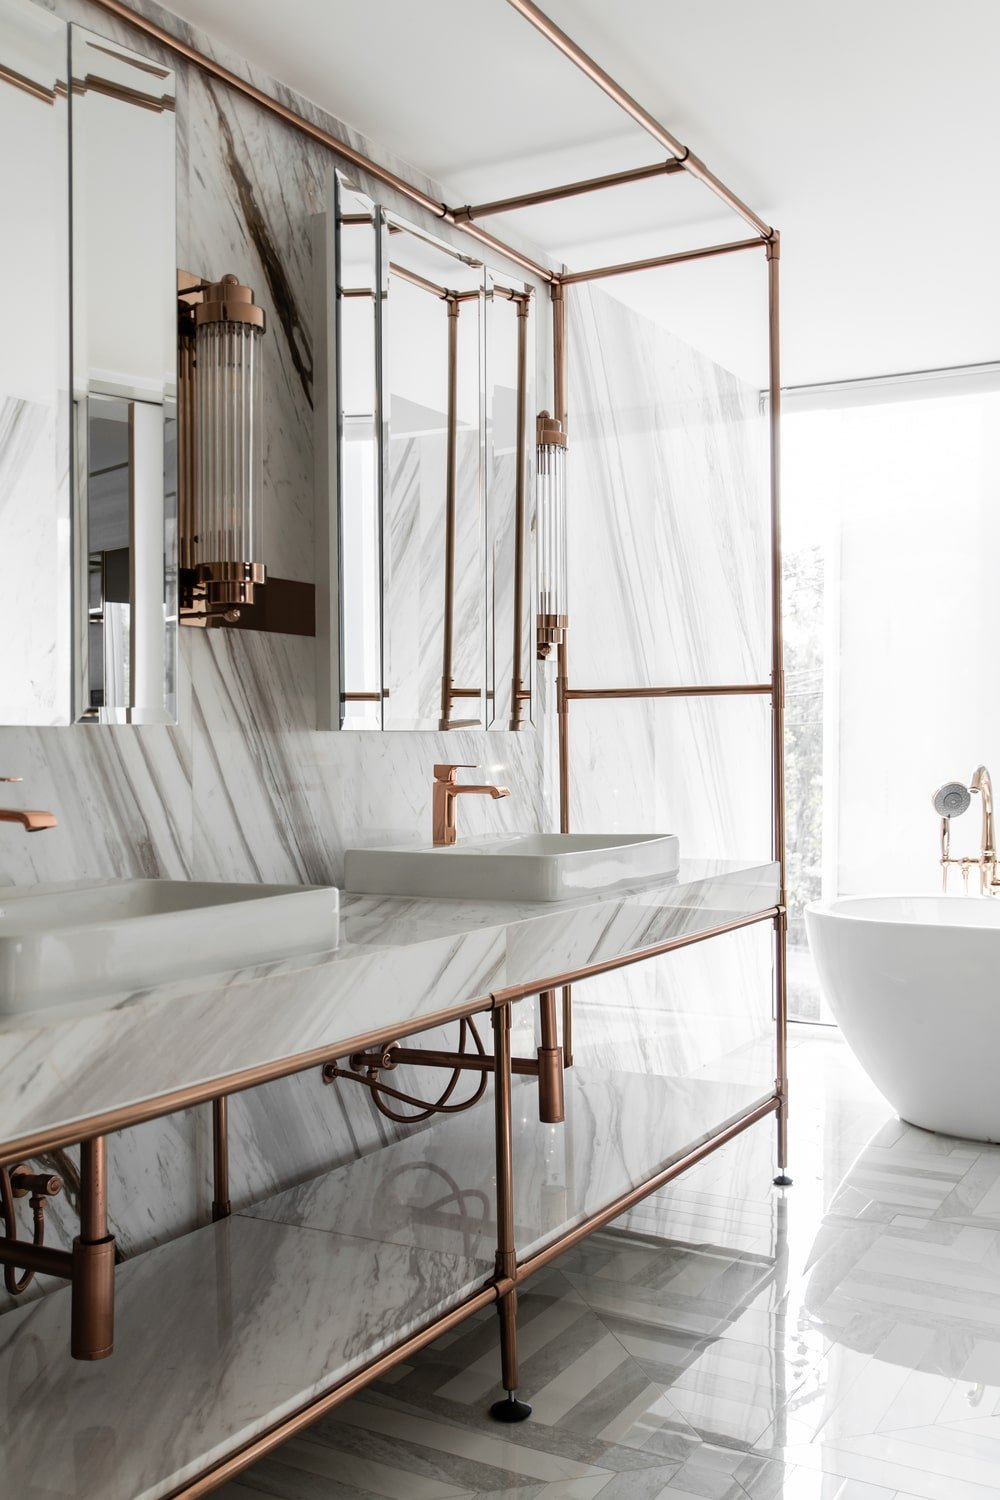 The white marble elements of this area is then complemented by the golden metallic frames and faucets.